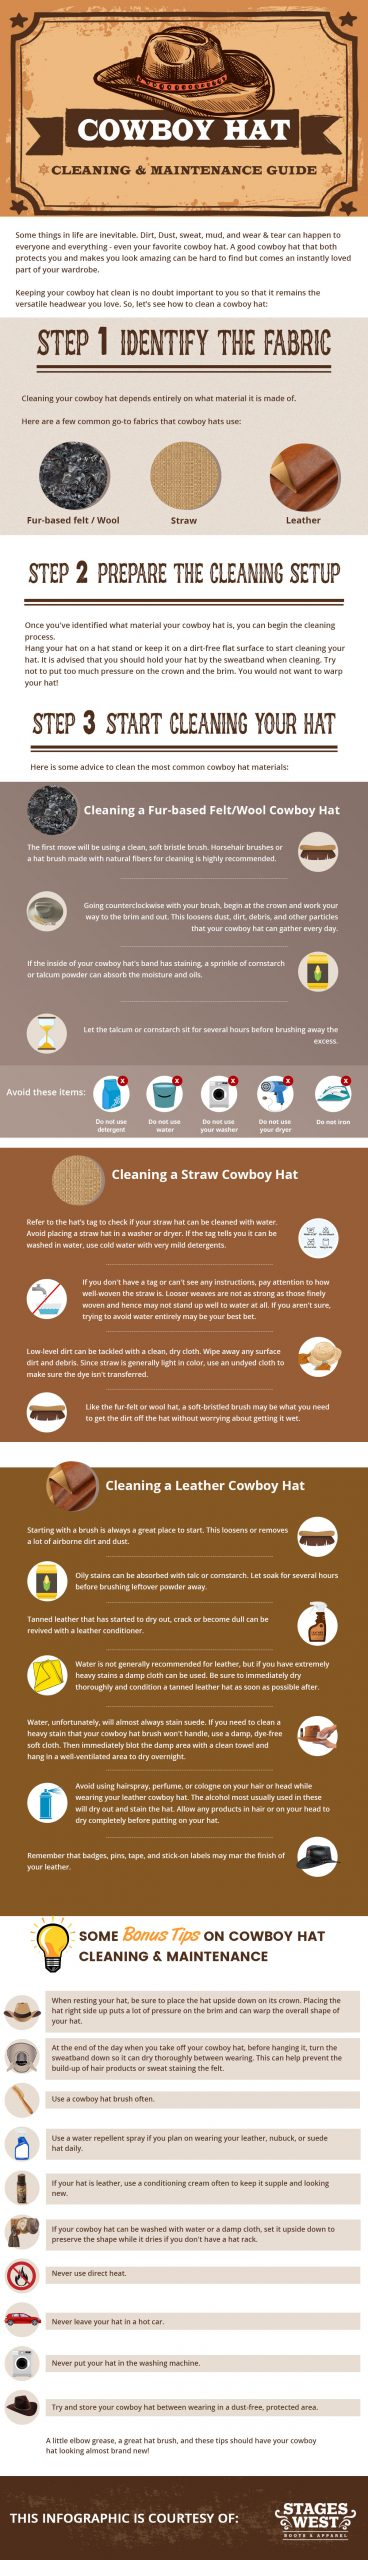 How To Take Care For Your Cowboy Hat